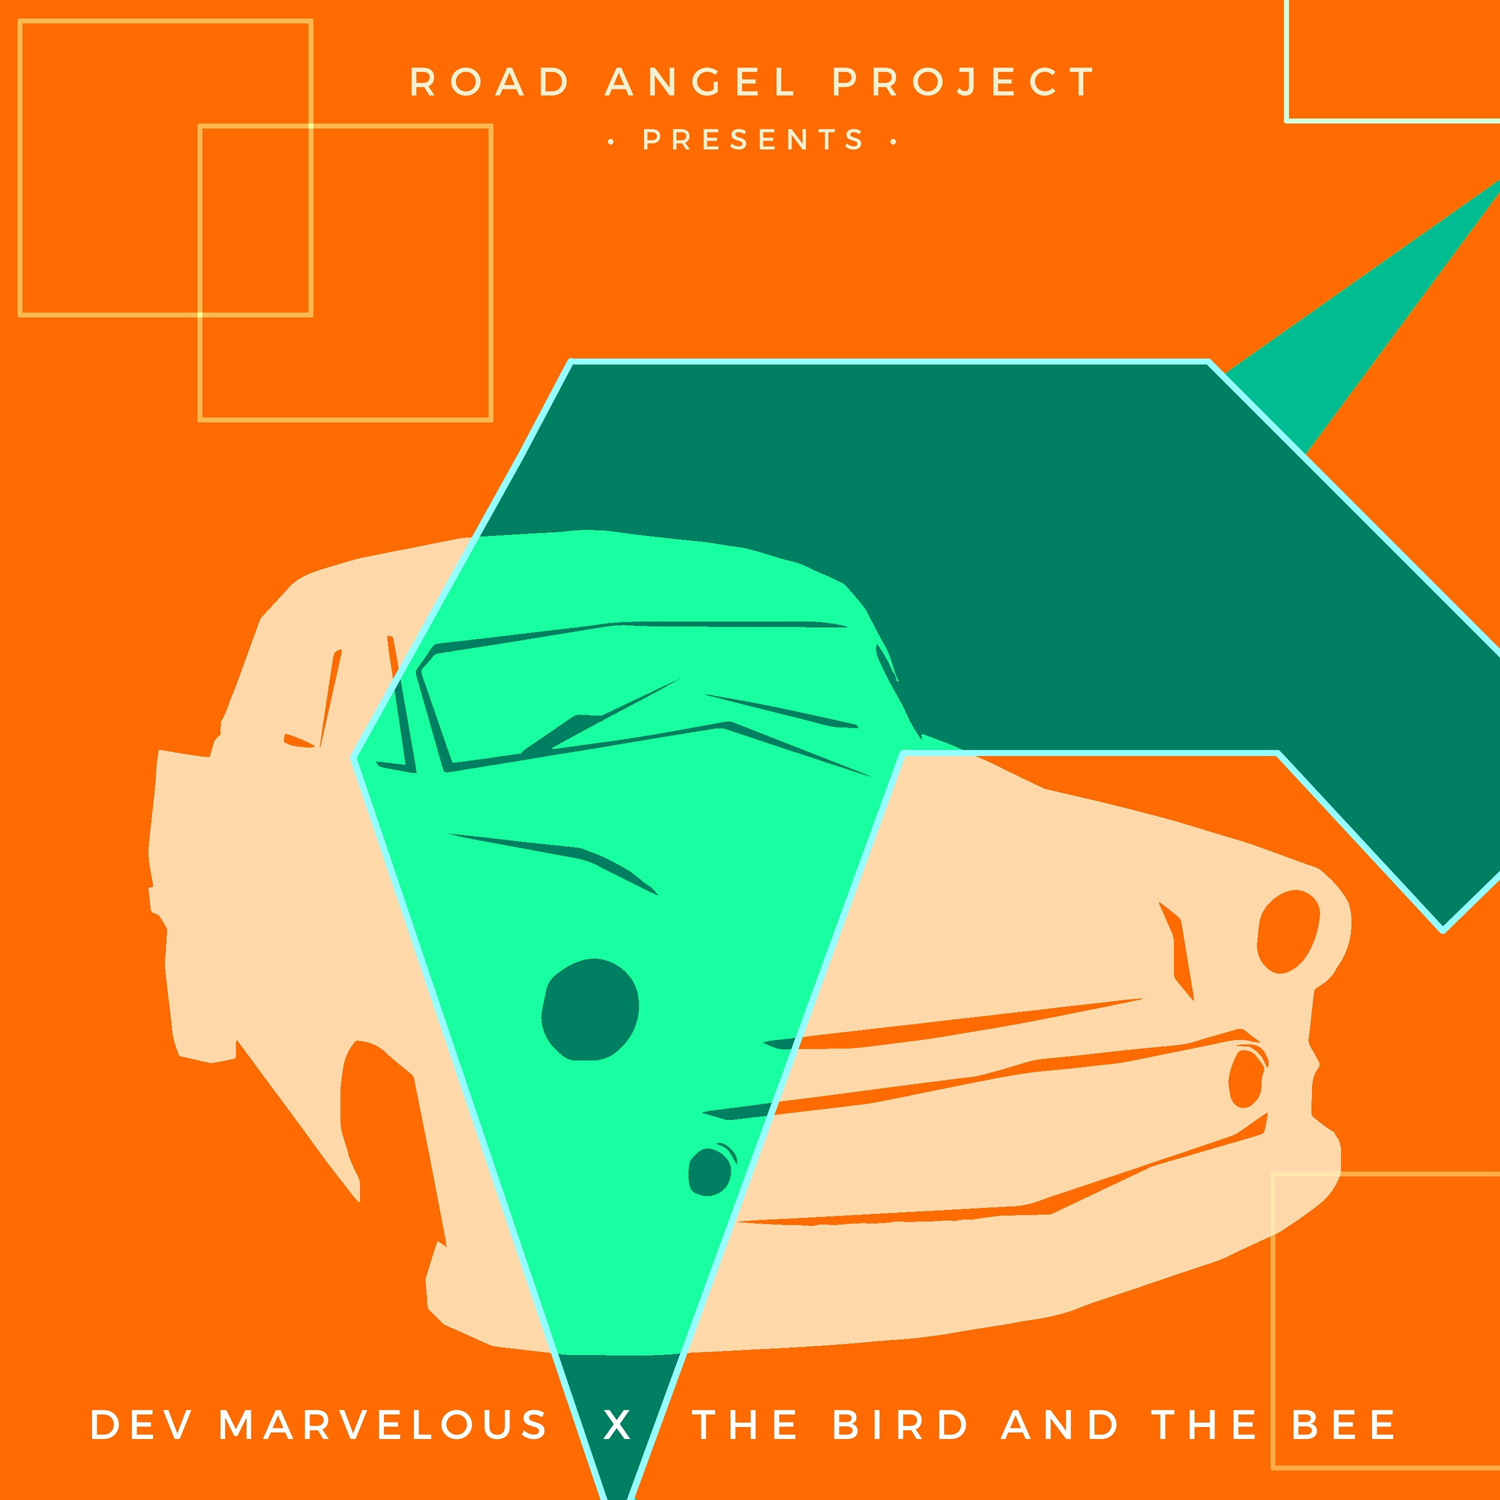 Dev Marvelous x The Bird and the Bee (Road Angel Project VI)